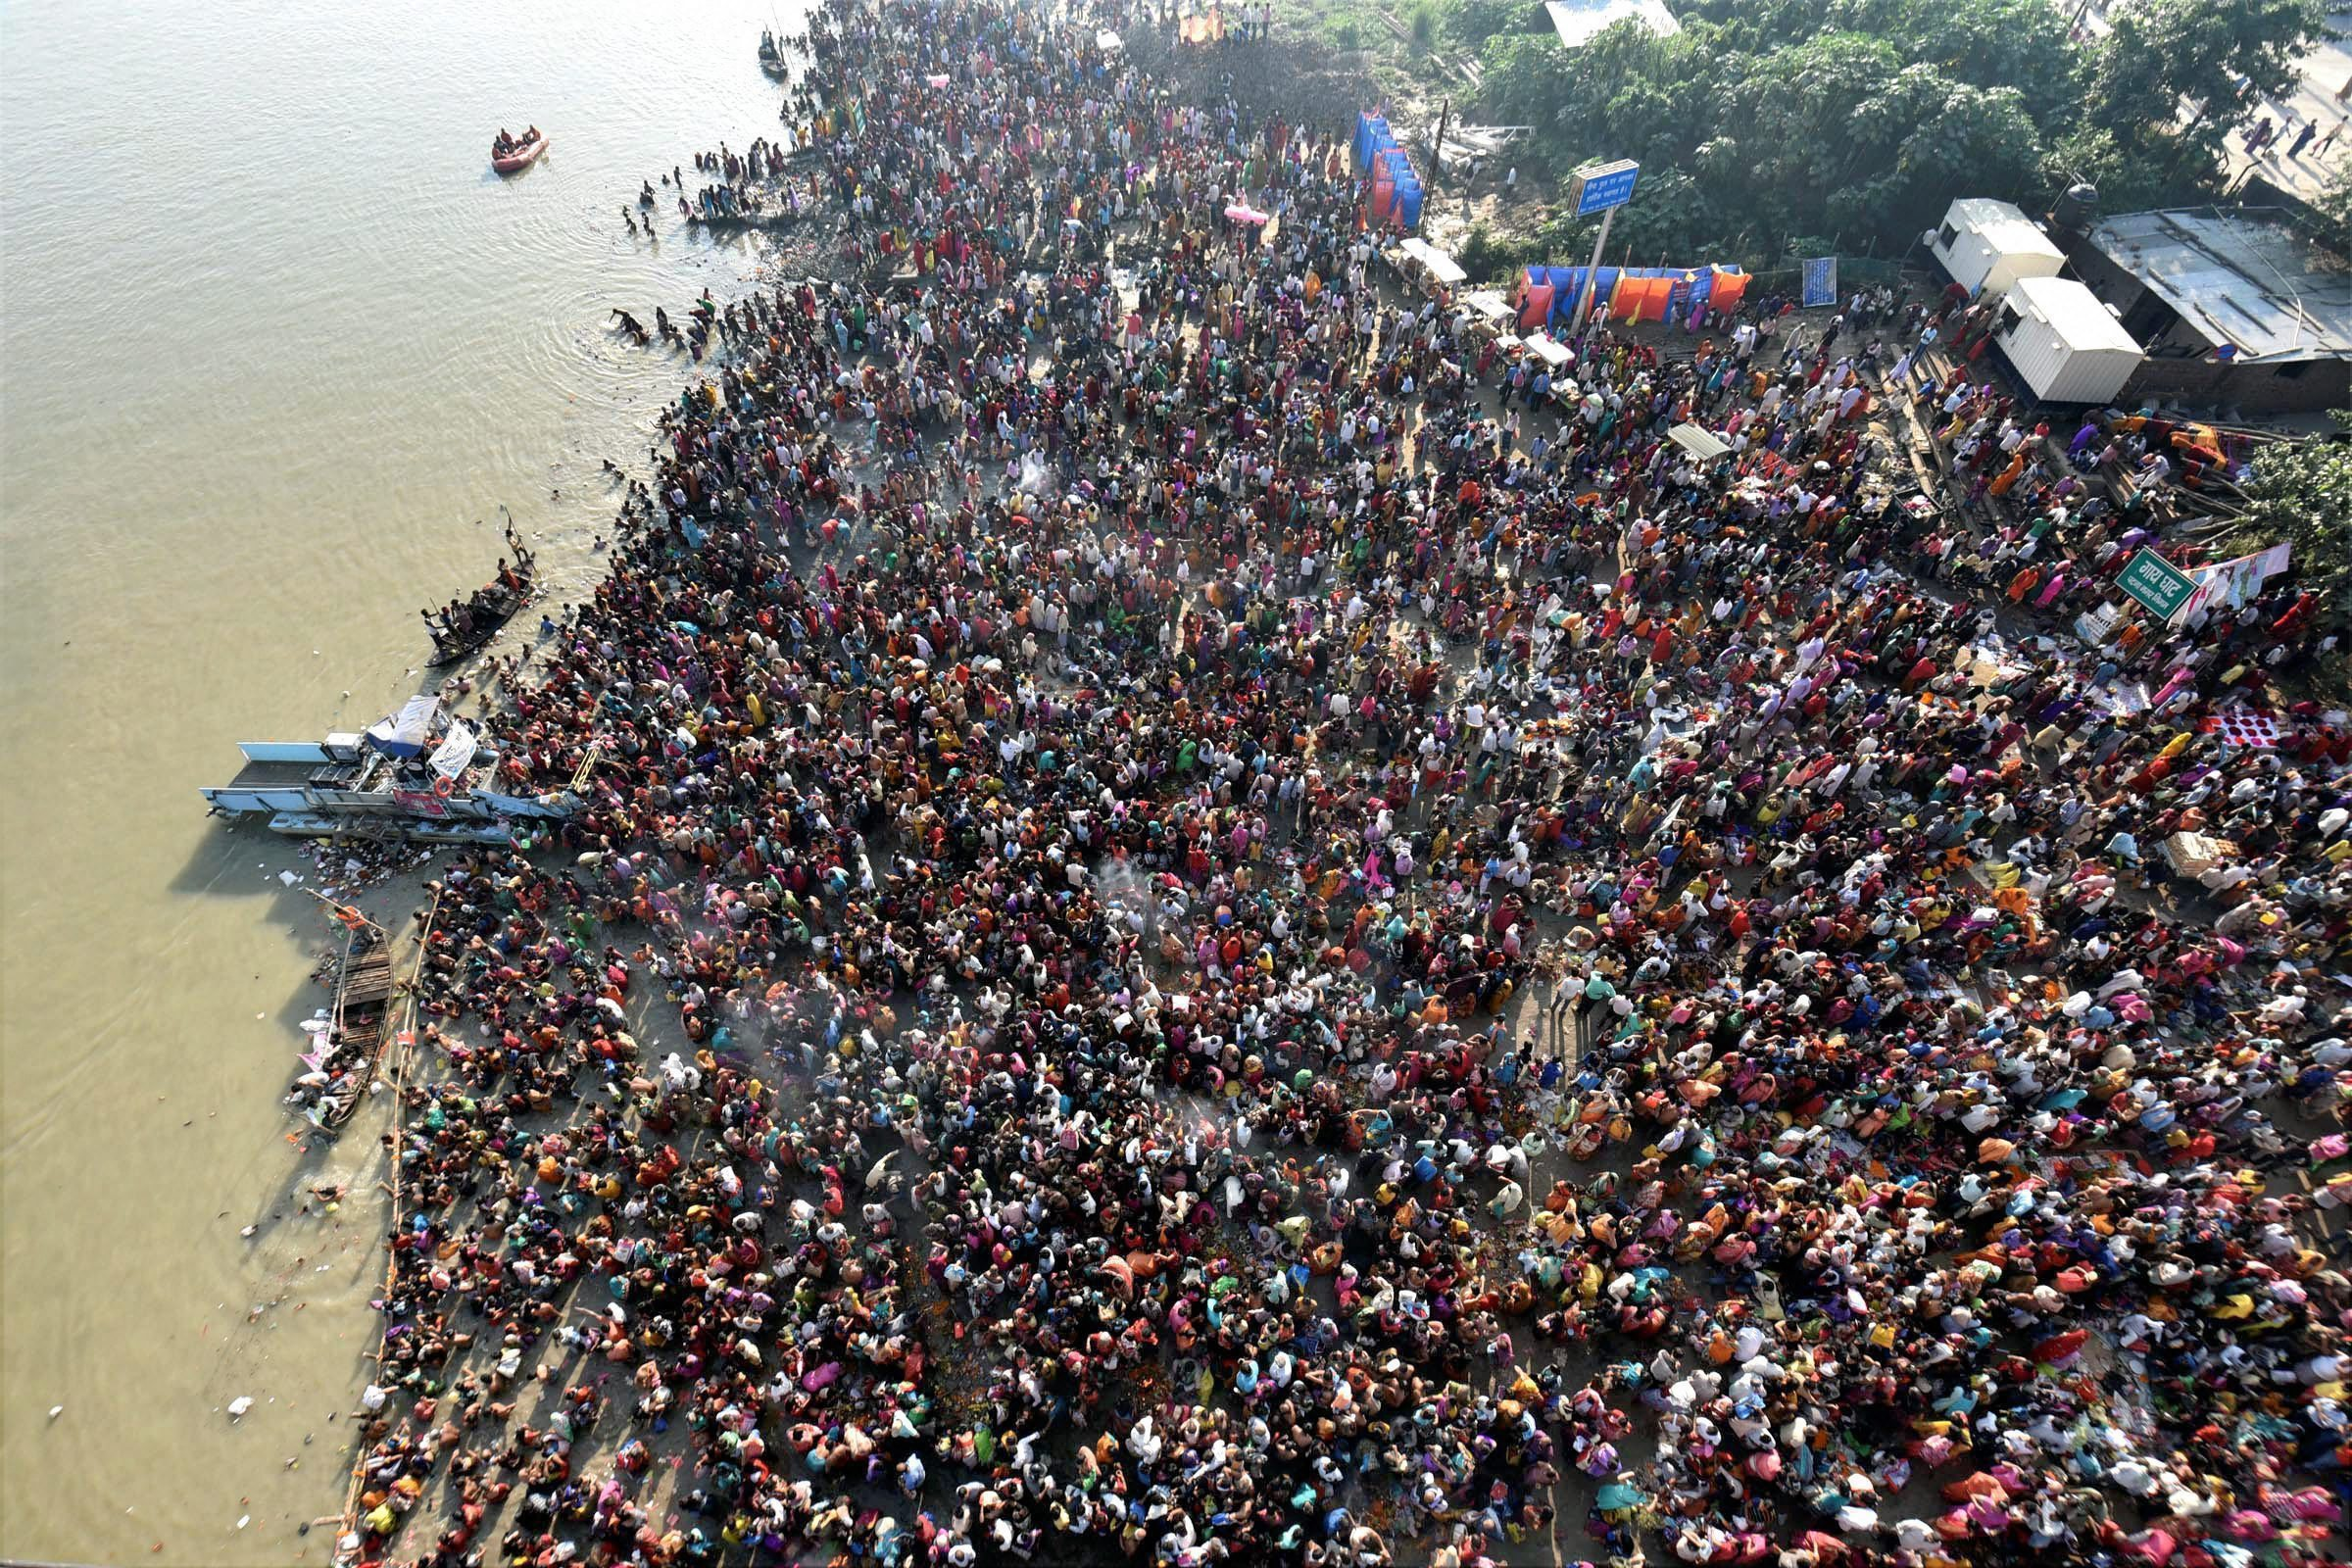 Kartik Purnima brings scores of devotees to the Ganga in Patna. (Credit: PTI)